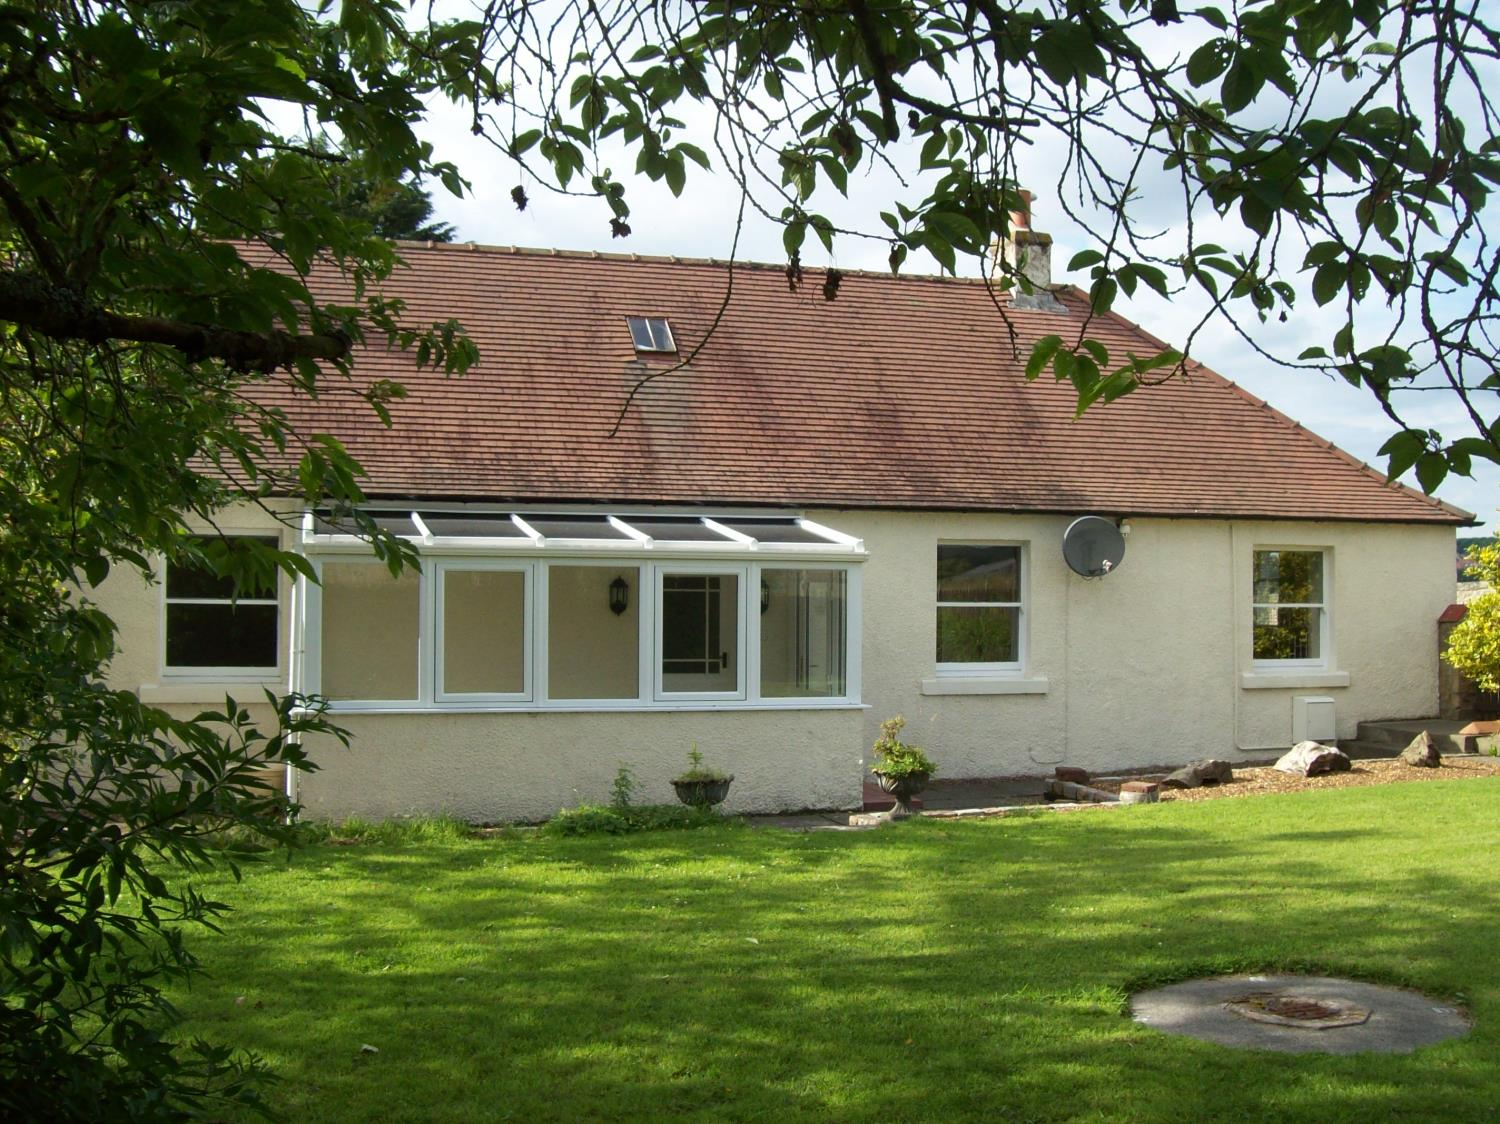 View property for rent Clematis Cottage, Bellsmains, By Gorebridge